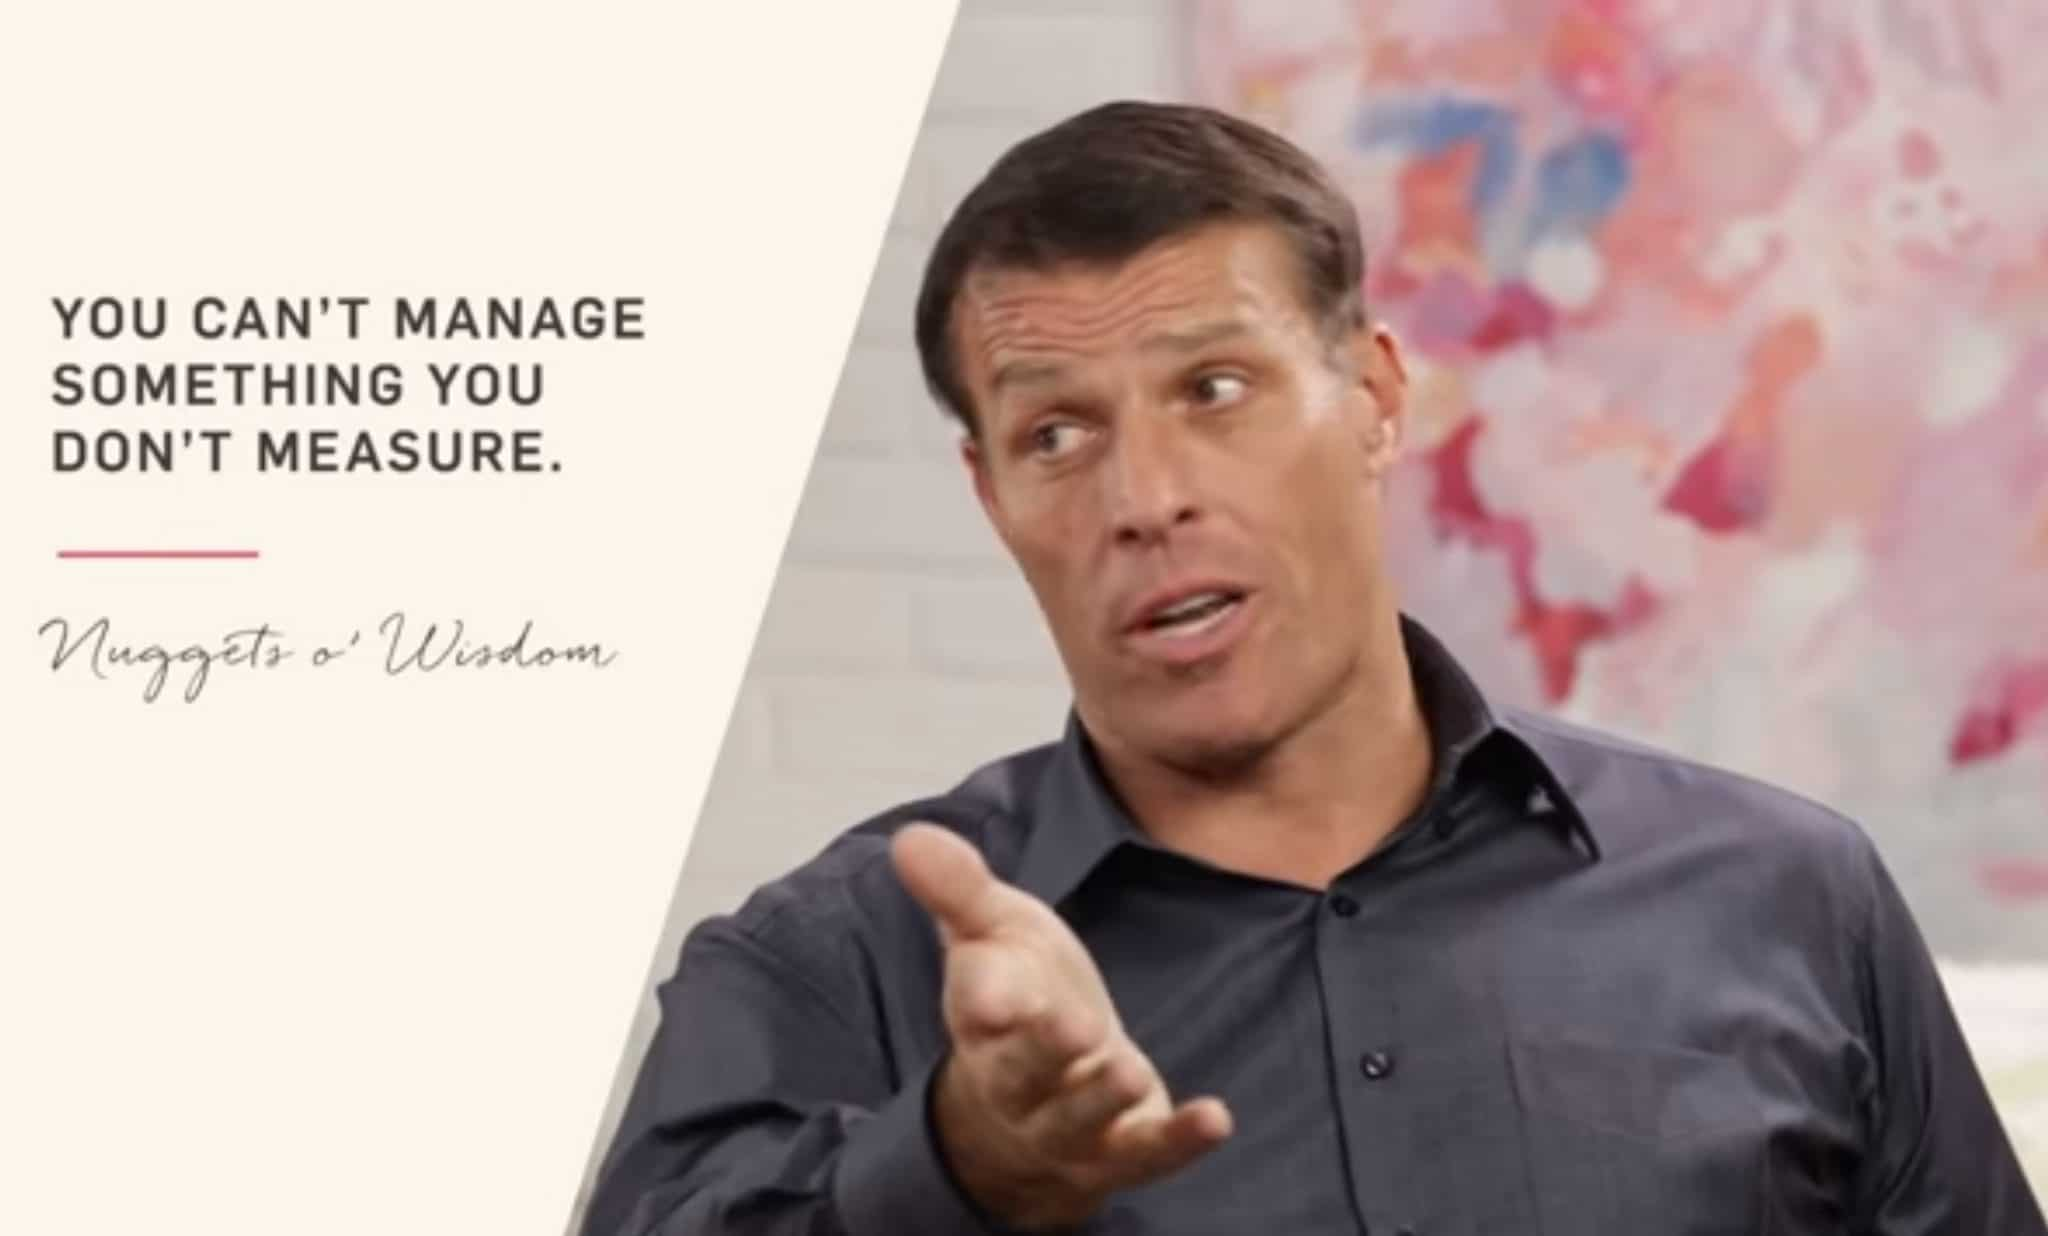 Measure_Tony Robbins